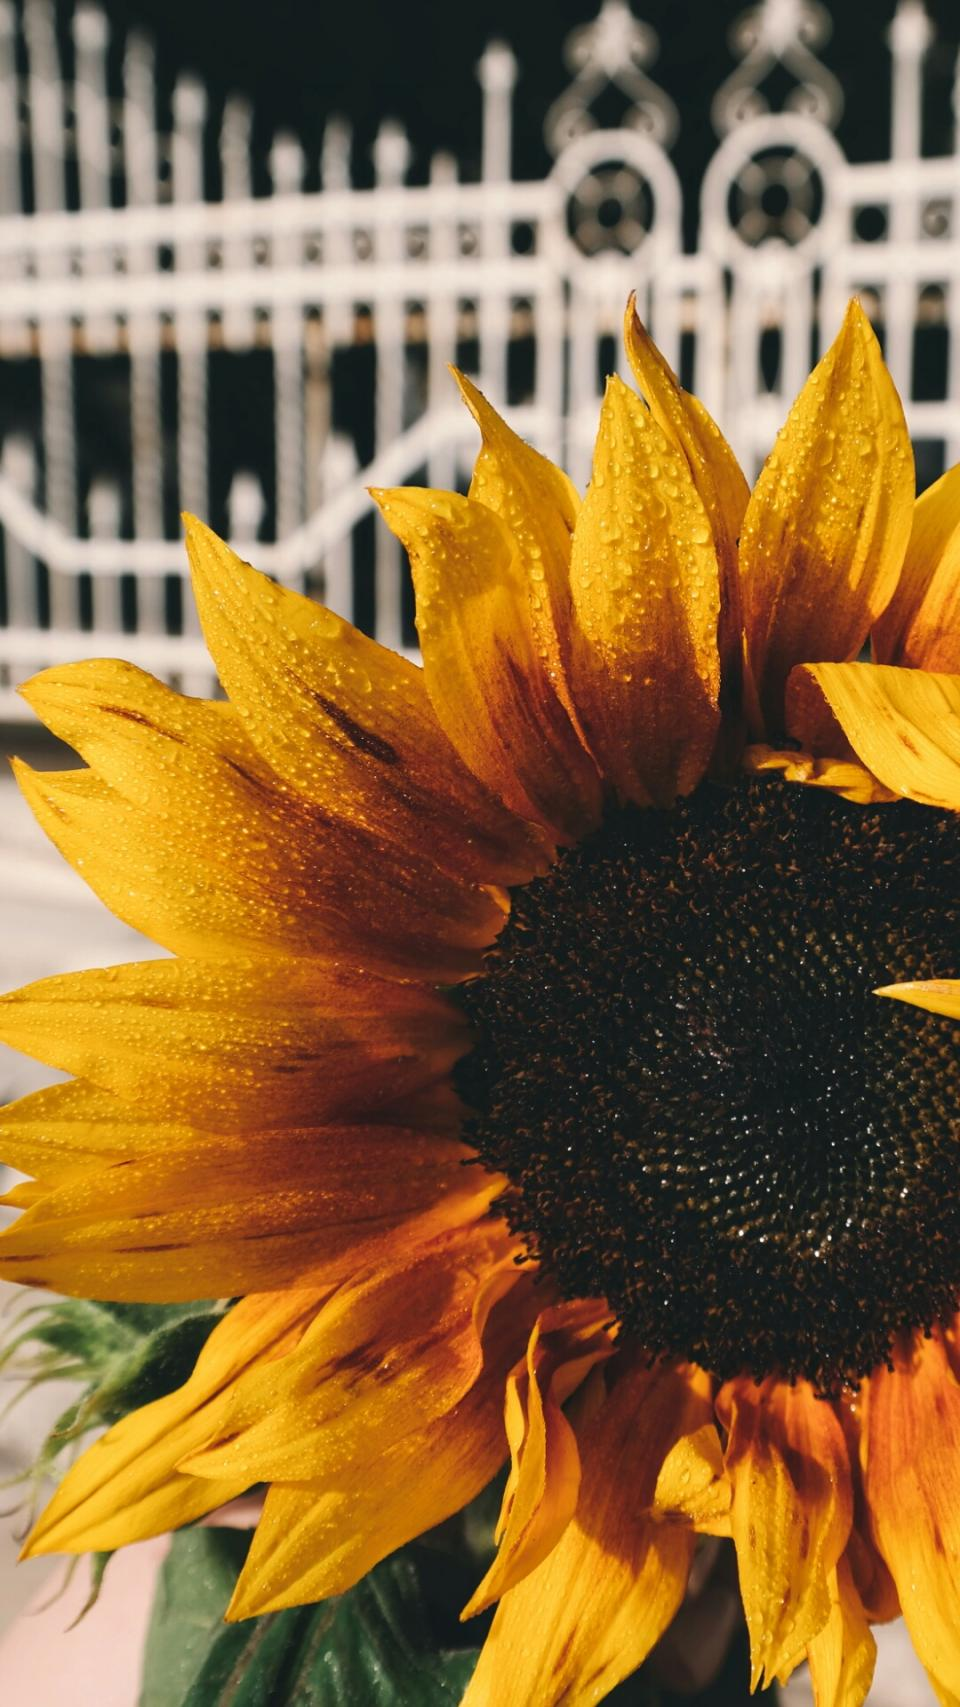 sunflower petals plant